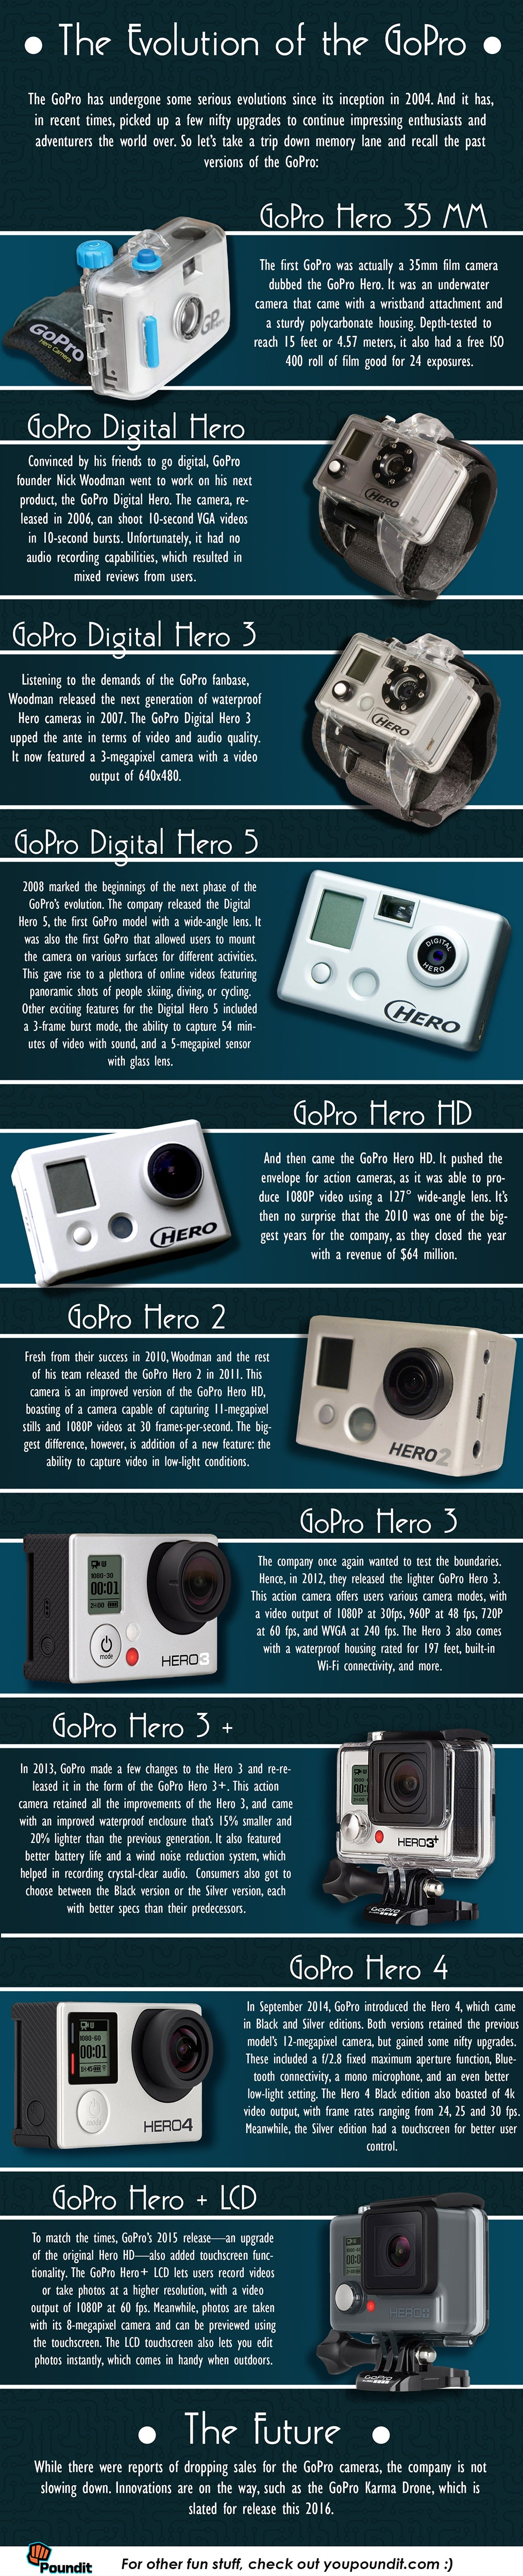 The Evolution of the GoPro